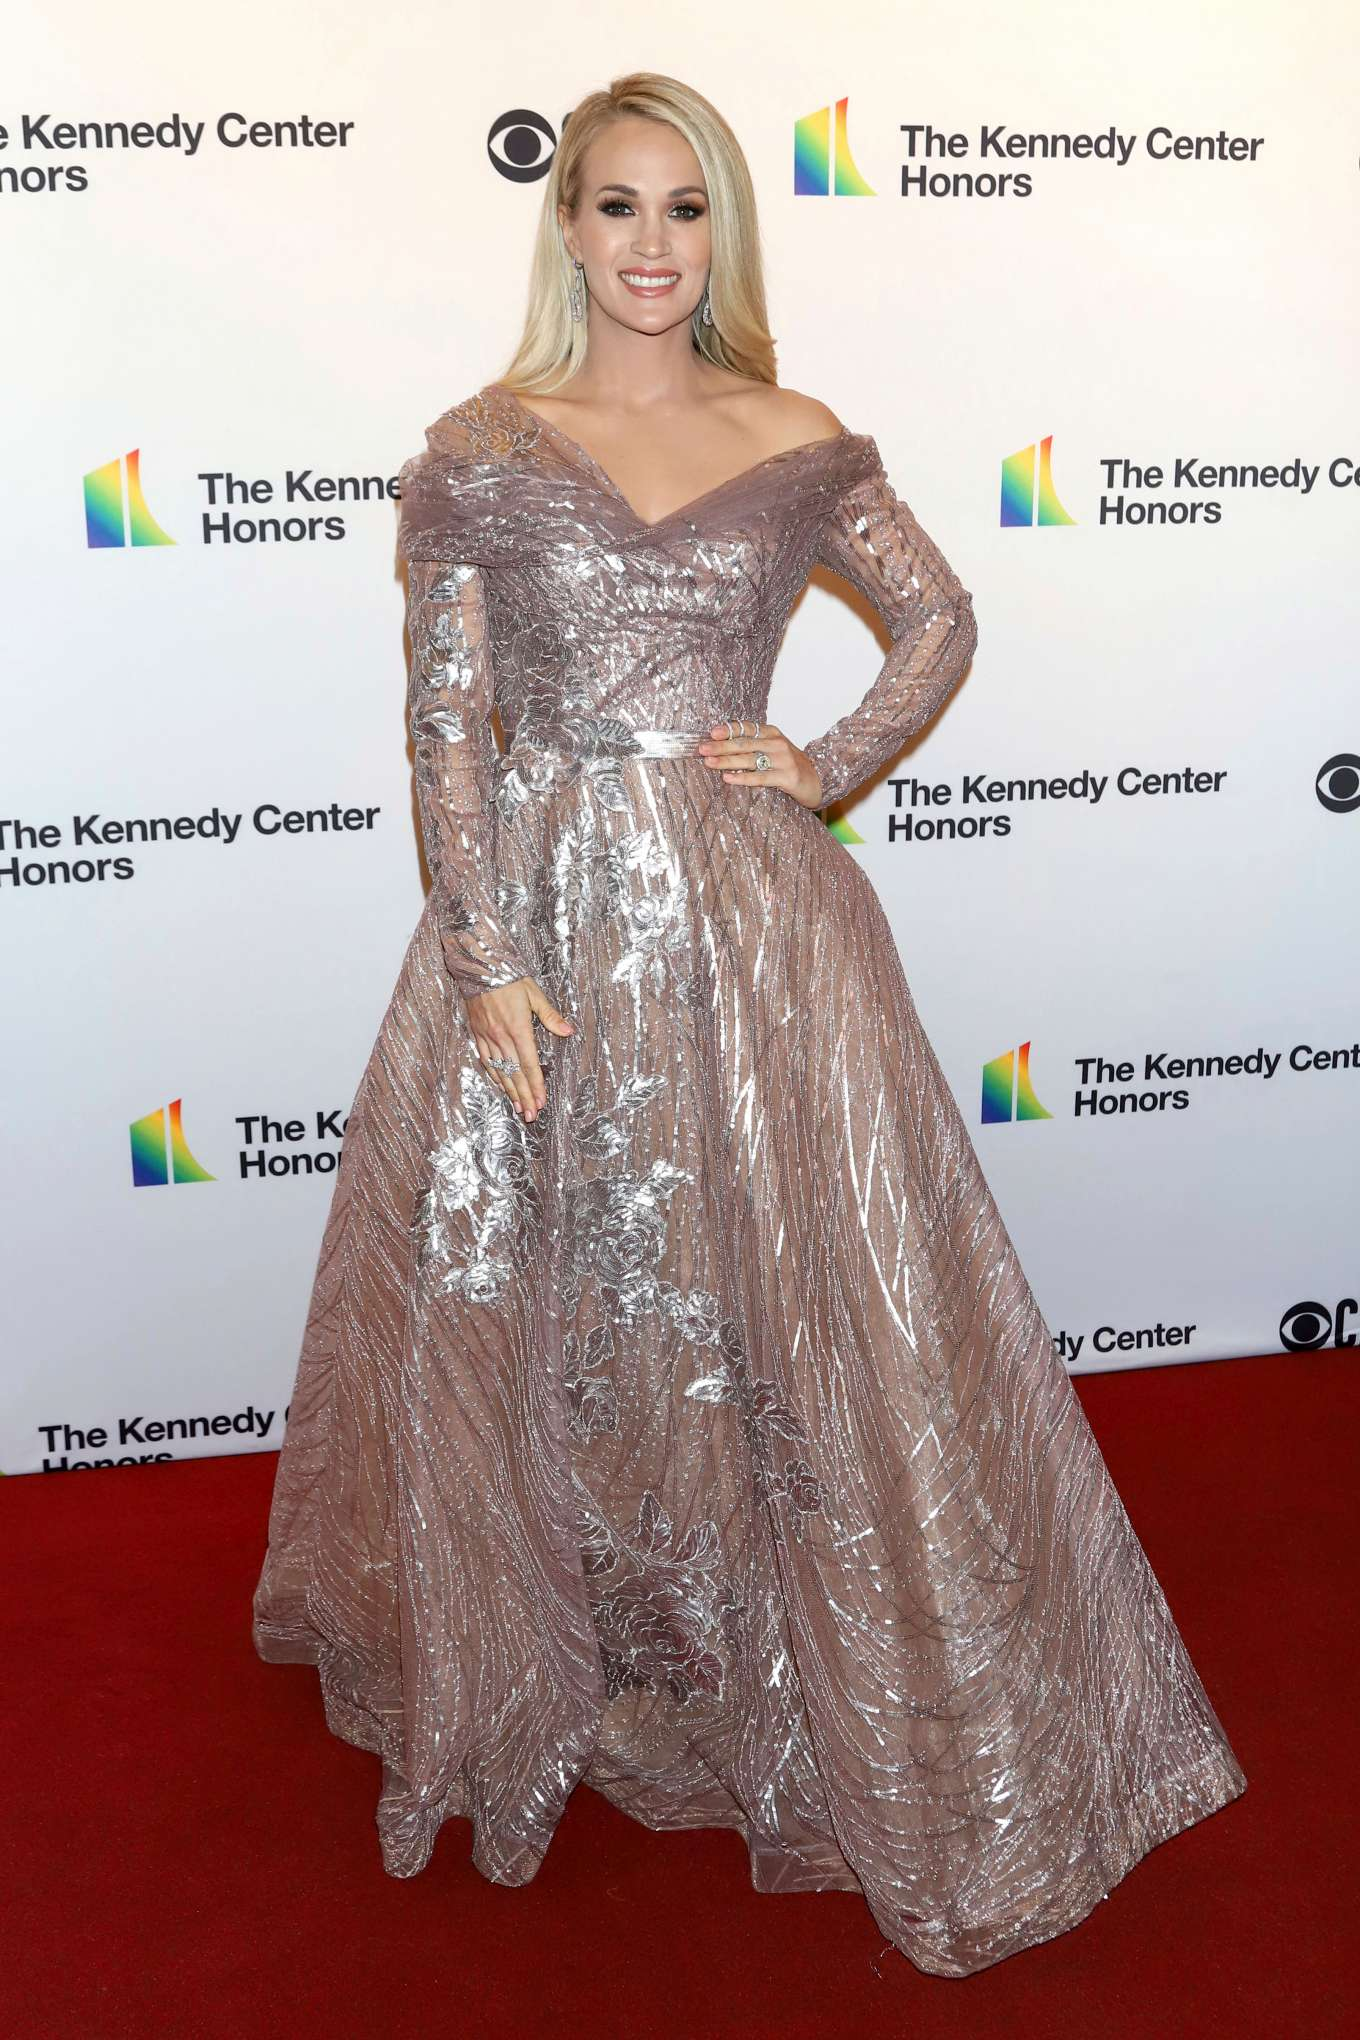 Carrie Underwood 2019 : Carrie Underwood – Possing at 2019 Kennedy Center Honors in Washington-10